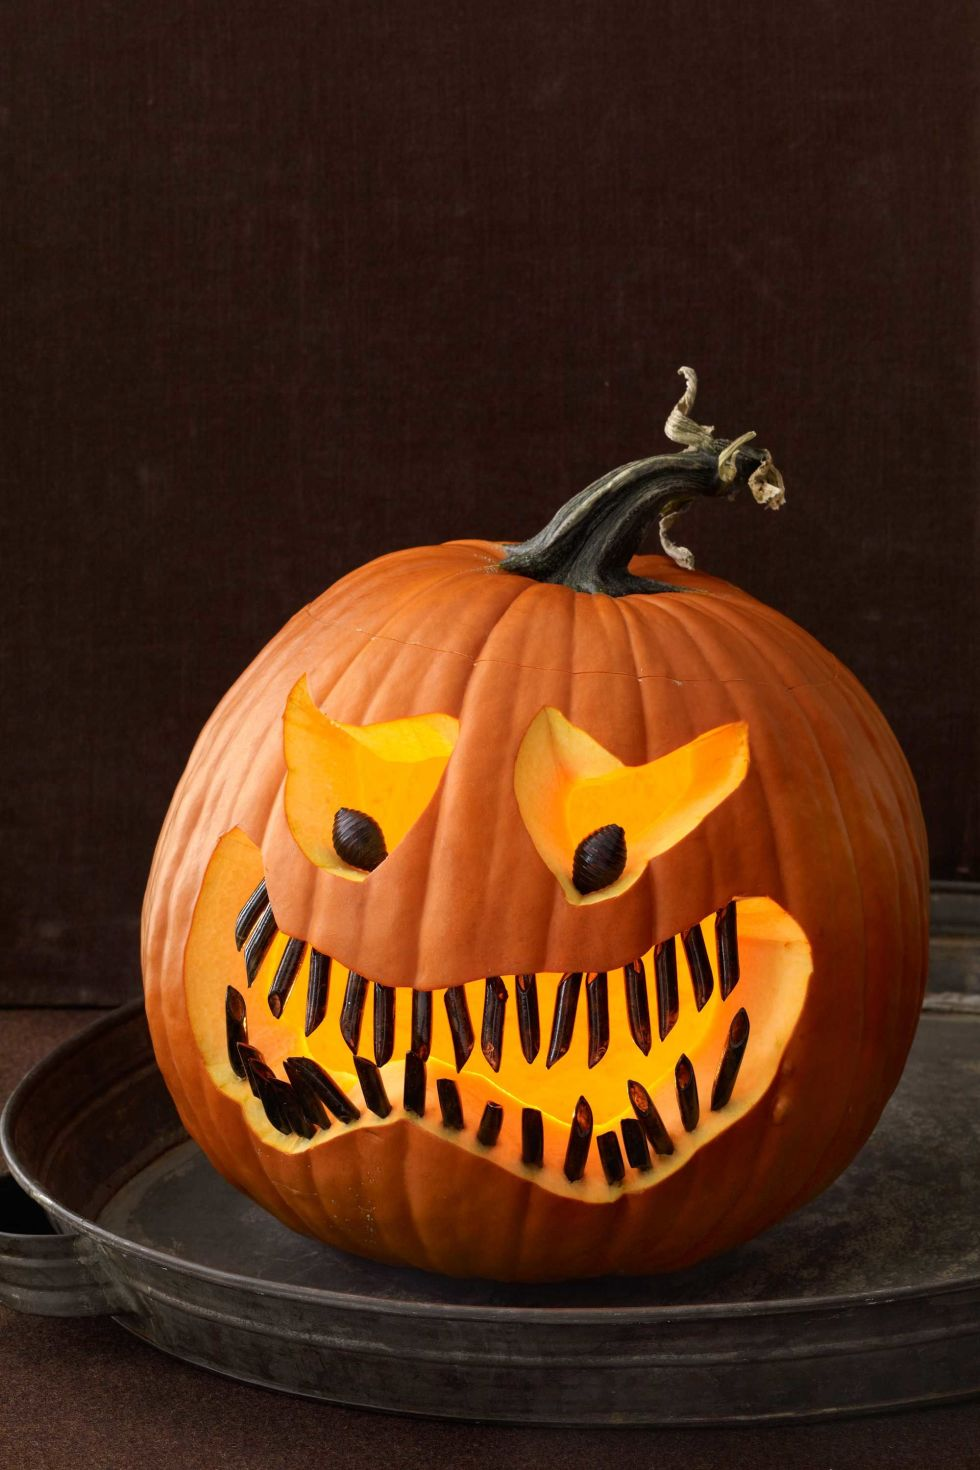 65 best pumpkin carving ideas halloween 2017 creative jack o lantern designs - Cool Halloween Designs